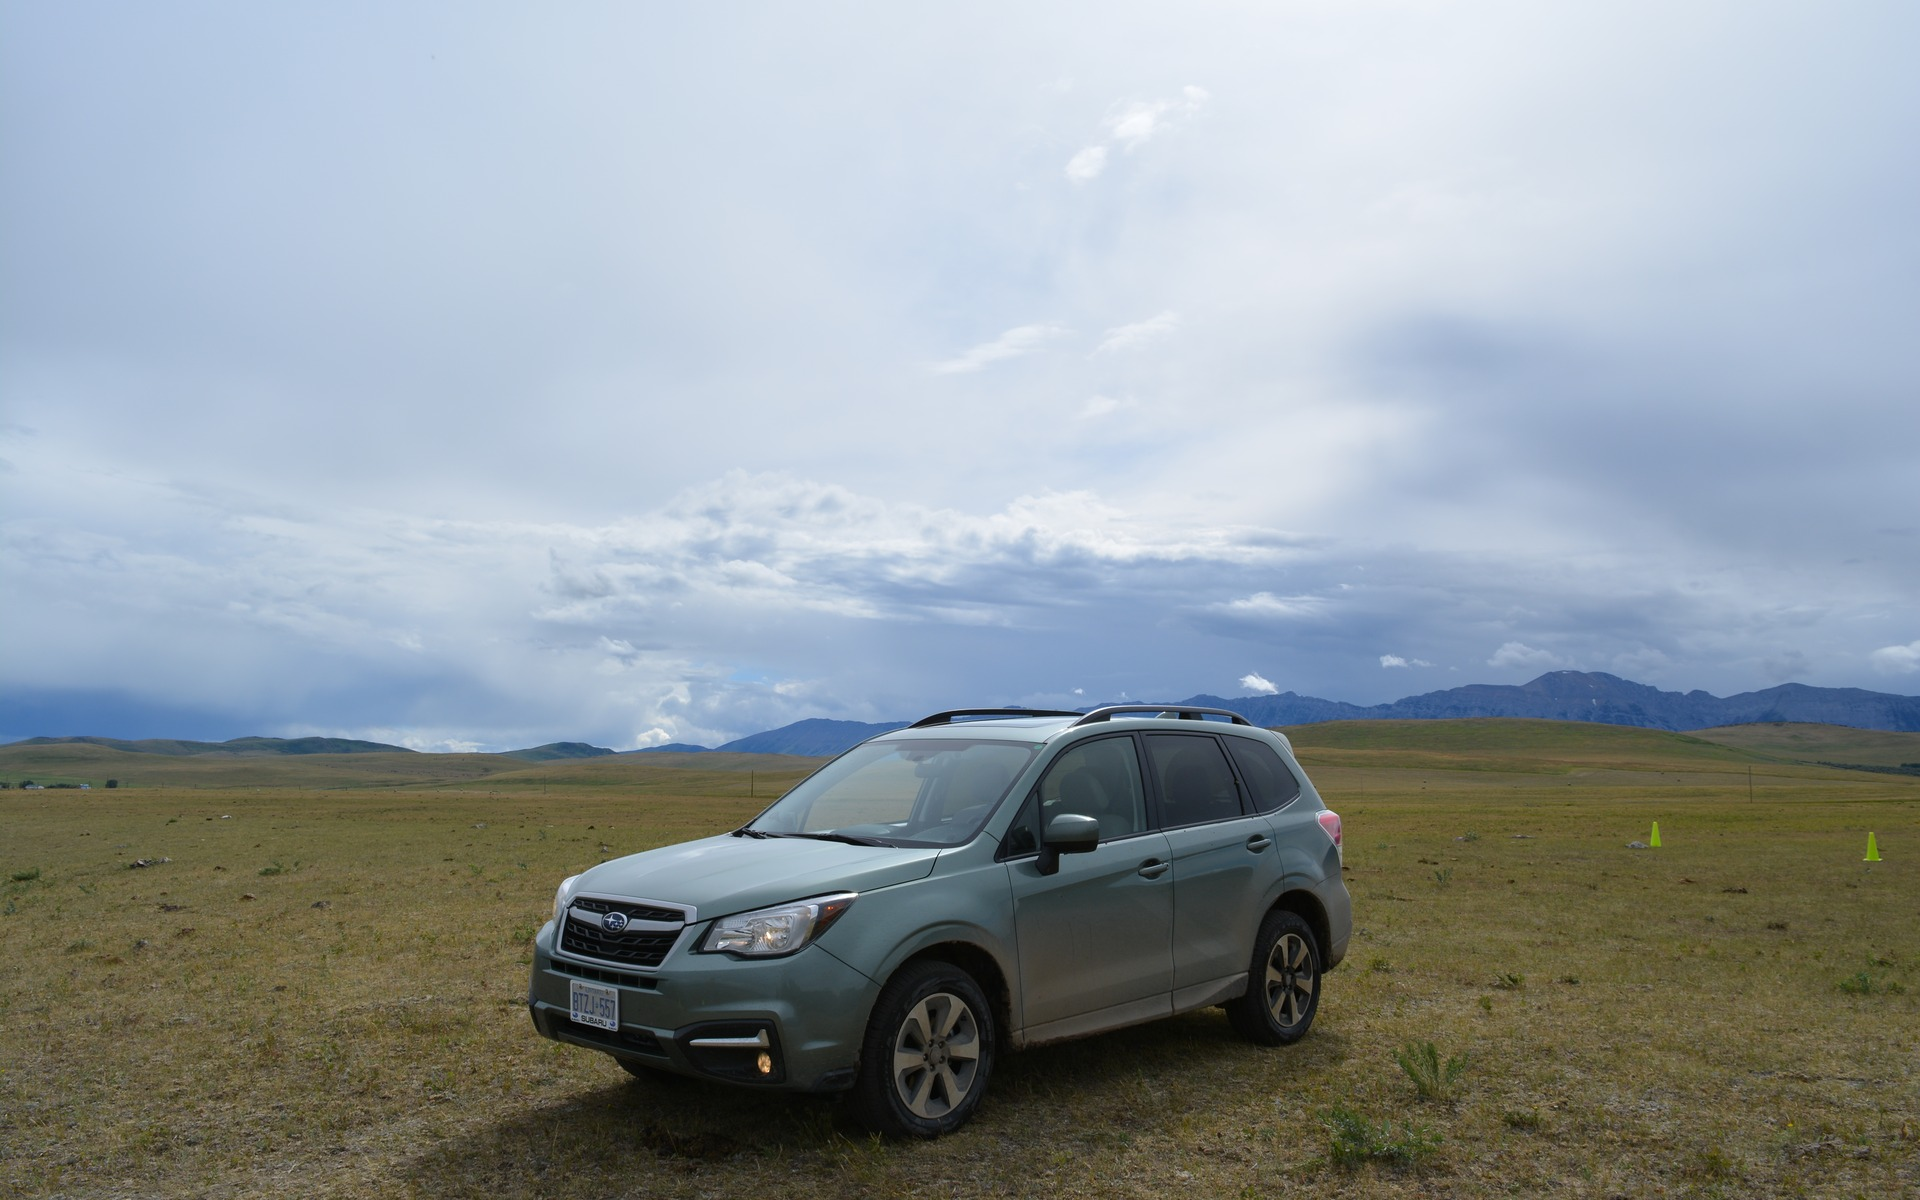 2017 Subaru Forester: Subaru is Japanese - The Car Guide